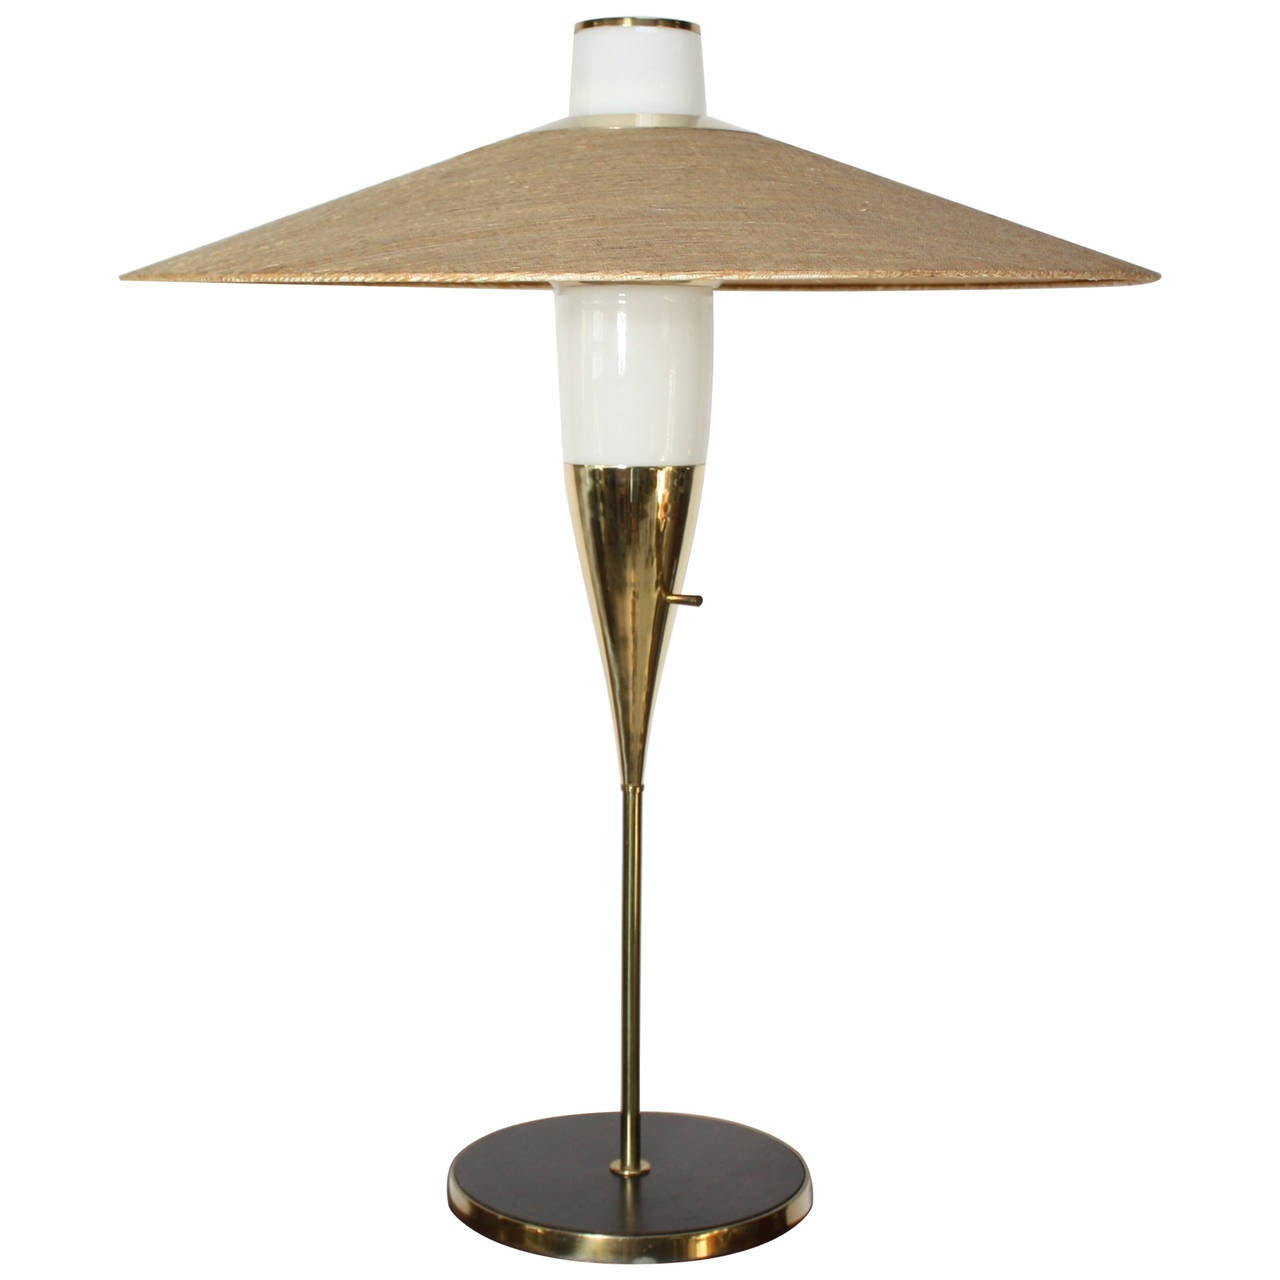 American Modern Brass And Glass Table Lamp With Oversized